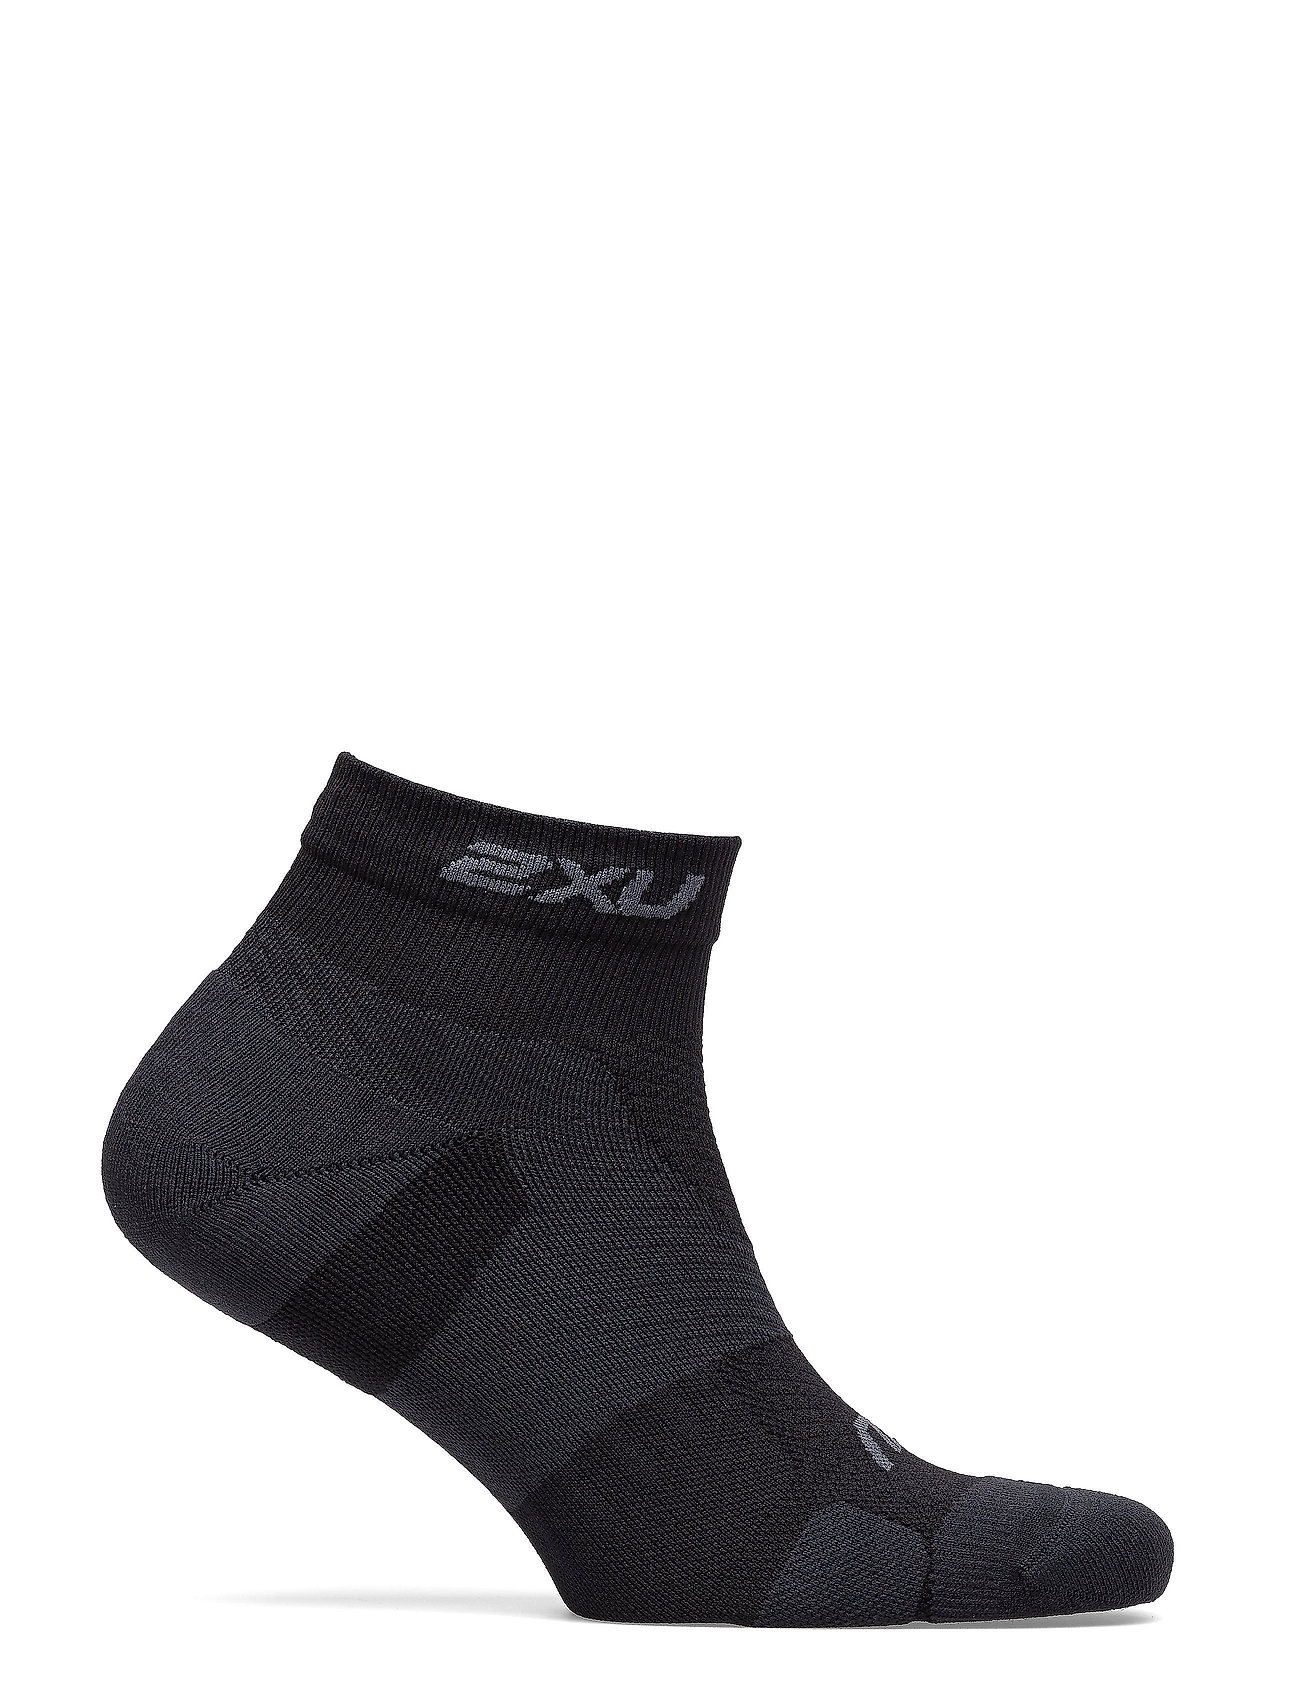 2XU - VECTR LIGHT CUSH 1/4 CREW SOC - kousen - black/titanium - 0